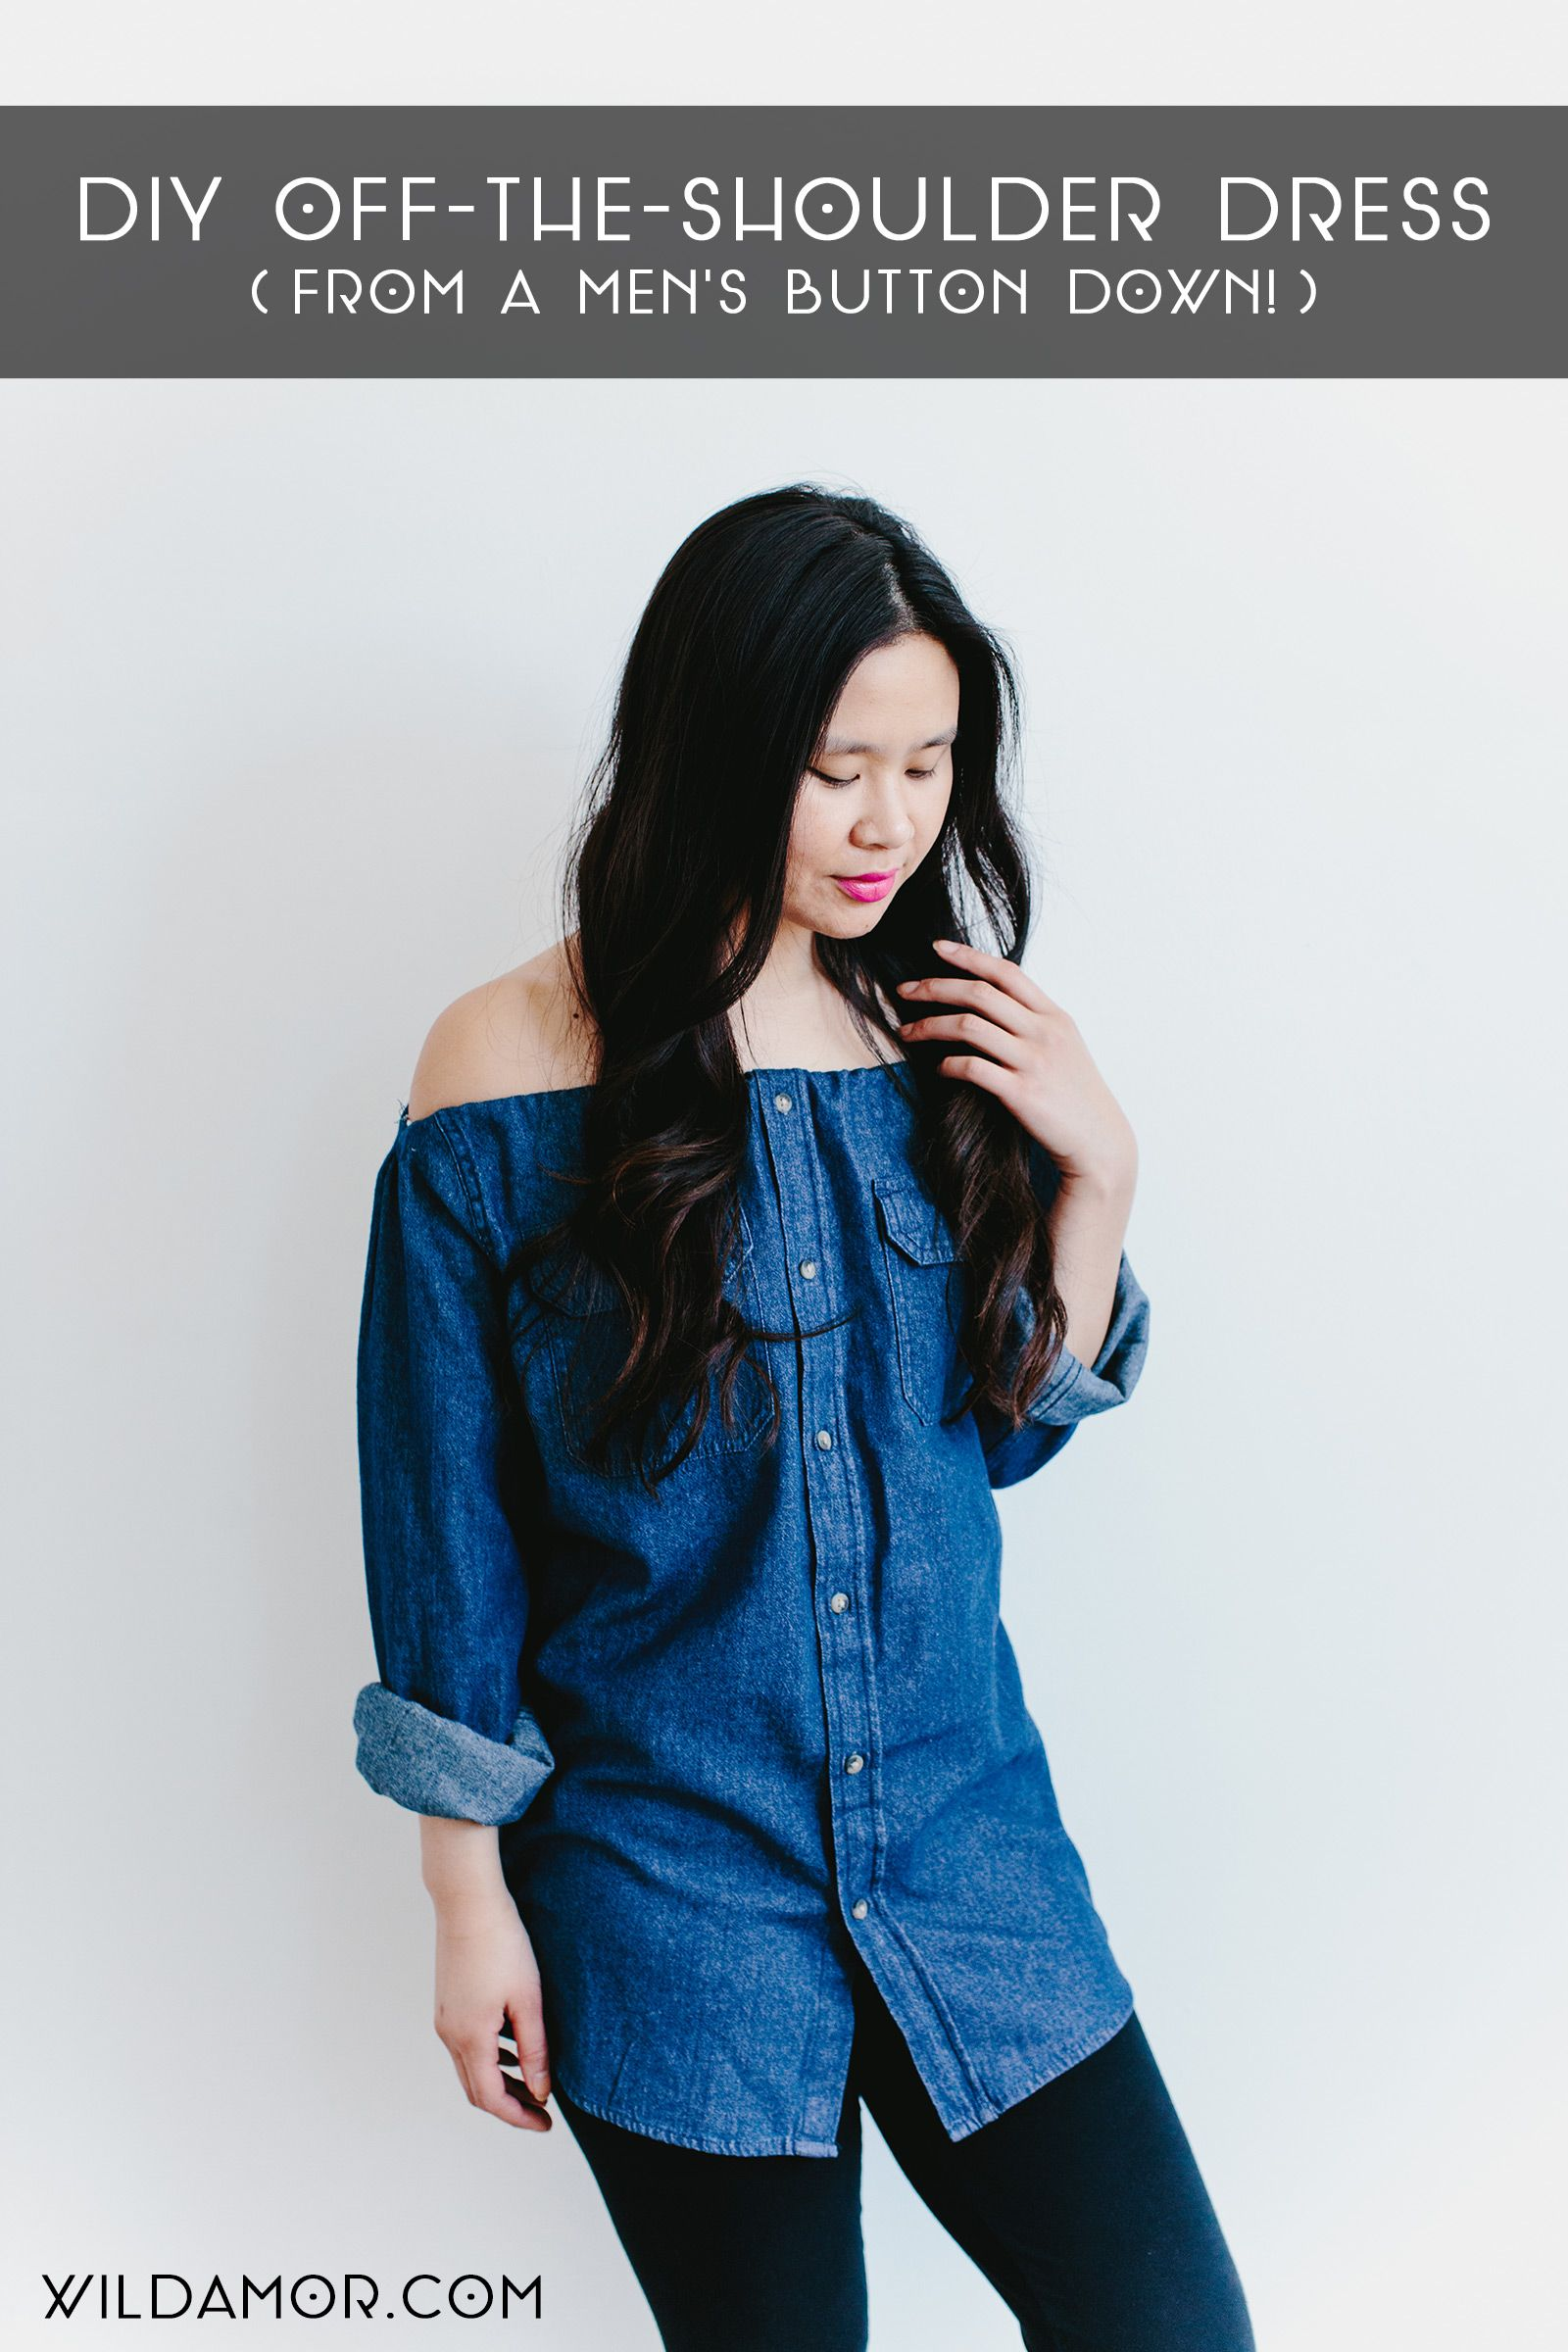 af43bbb7a23967 How to Turn a Button-Down Shirt Into a DIY Off-the-Shoulder Top or Dress